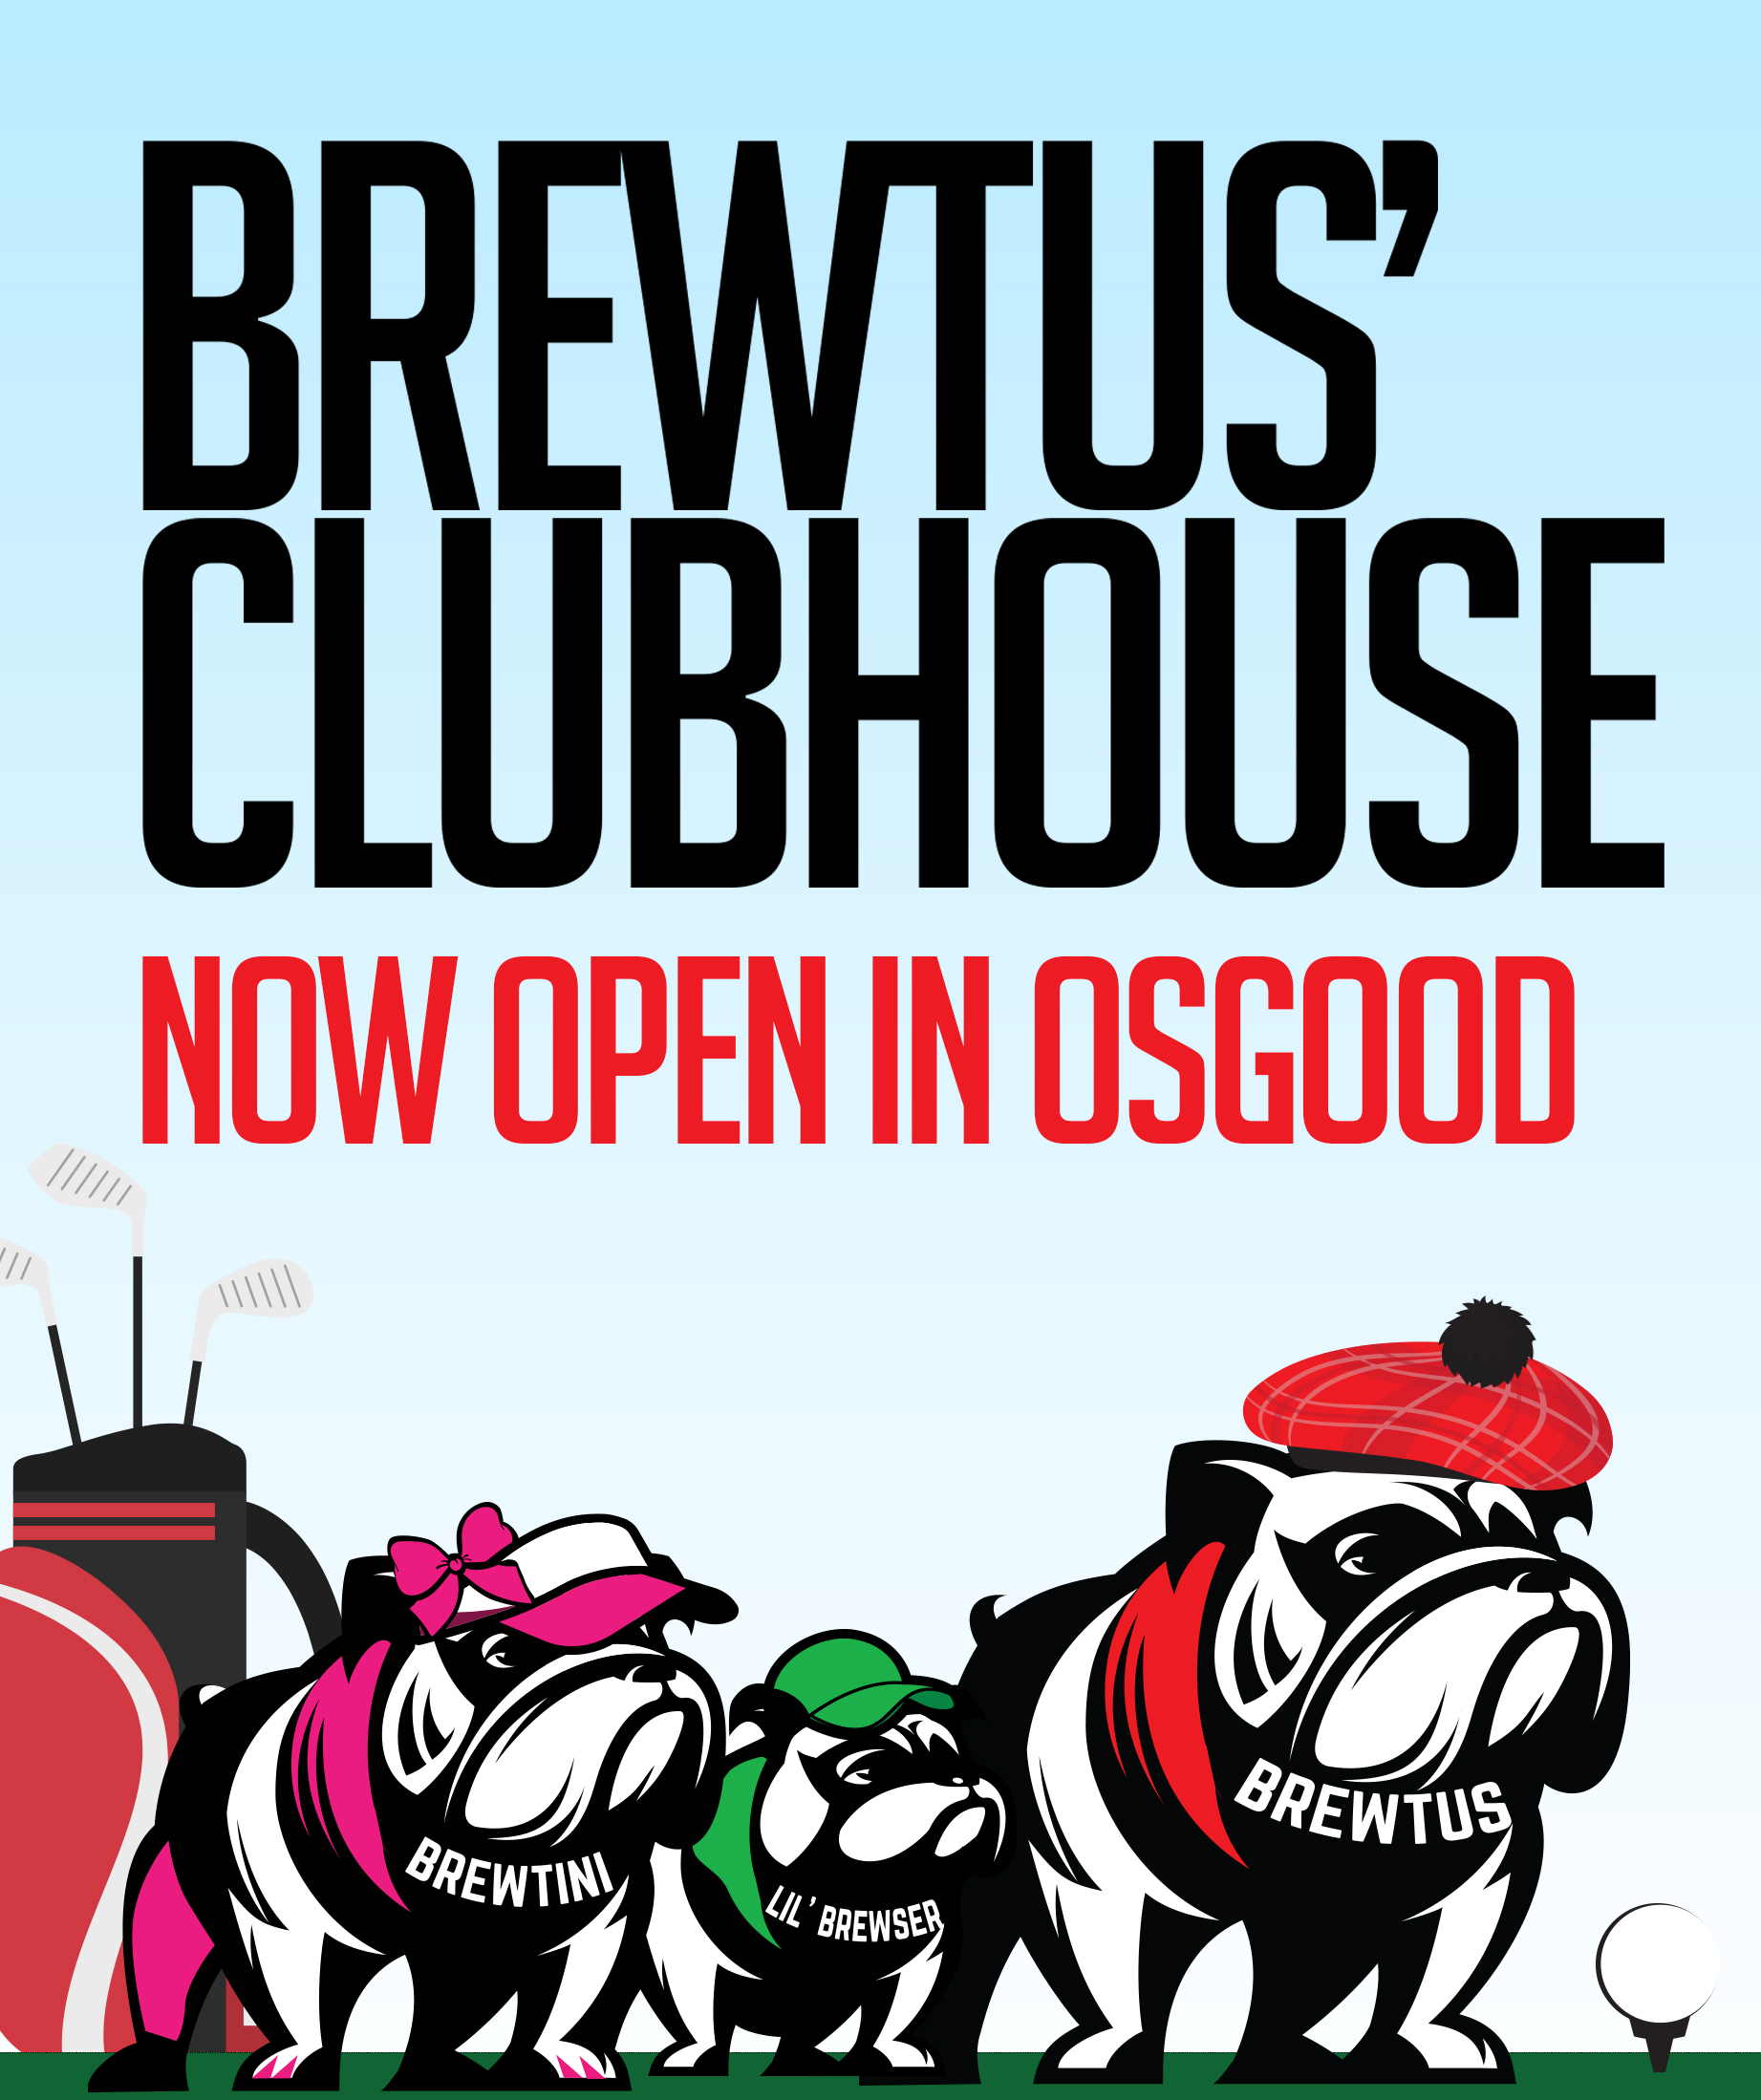 Brewtus can't really golf but don't tell him that because the whole family is now open for business on the green in the Osgood Golf Course Clubhouse! Open 11A-11P daily!